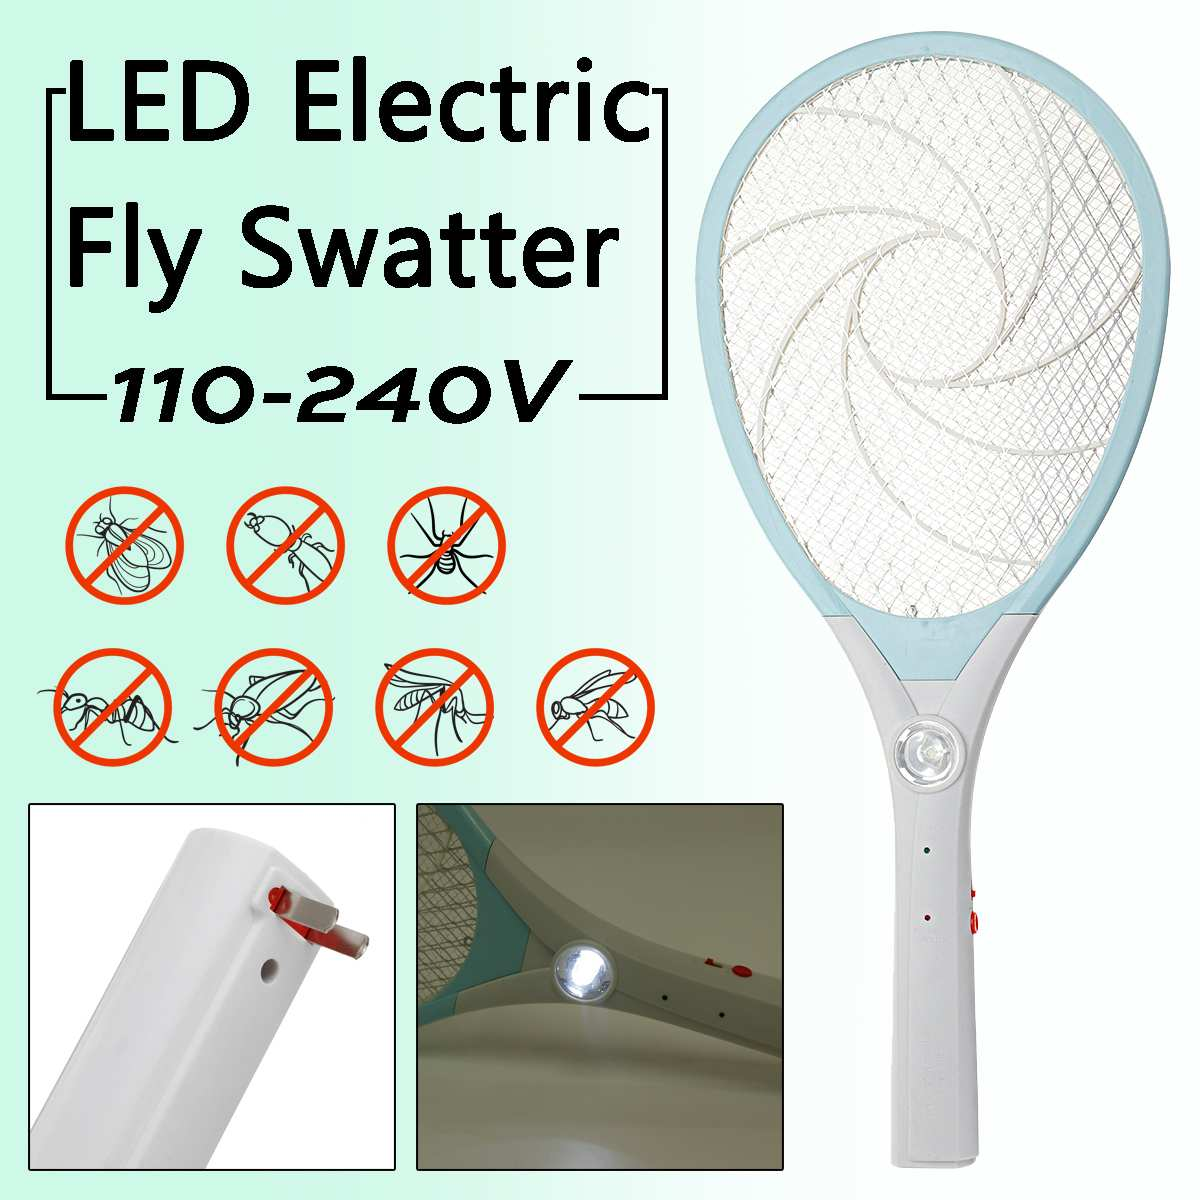 Electric Tennis Bat Handheld LED Bug Zapper Racket Home Garden Mosquito Fly Insect Bug Wasp Swatter Killer Insects RechargeableElectric Tennis Bat Handheld LED Bug Zapper Racket Home Garden Mosquito Fly Insect Bug Wasp Swatter Killer Insects Rechargeable